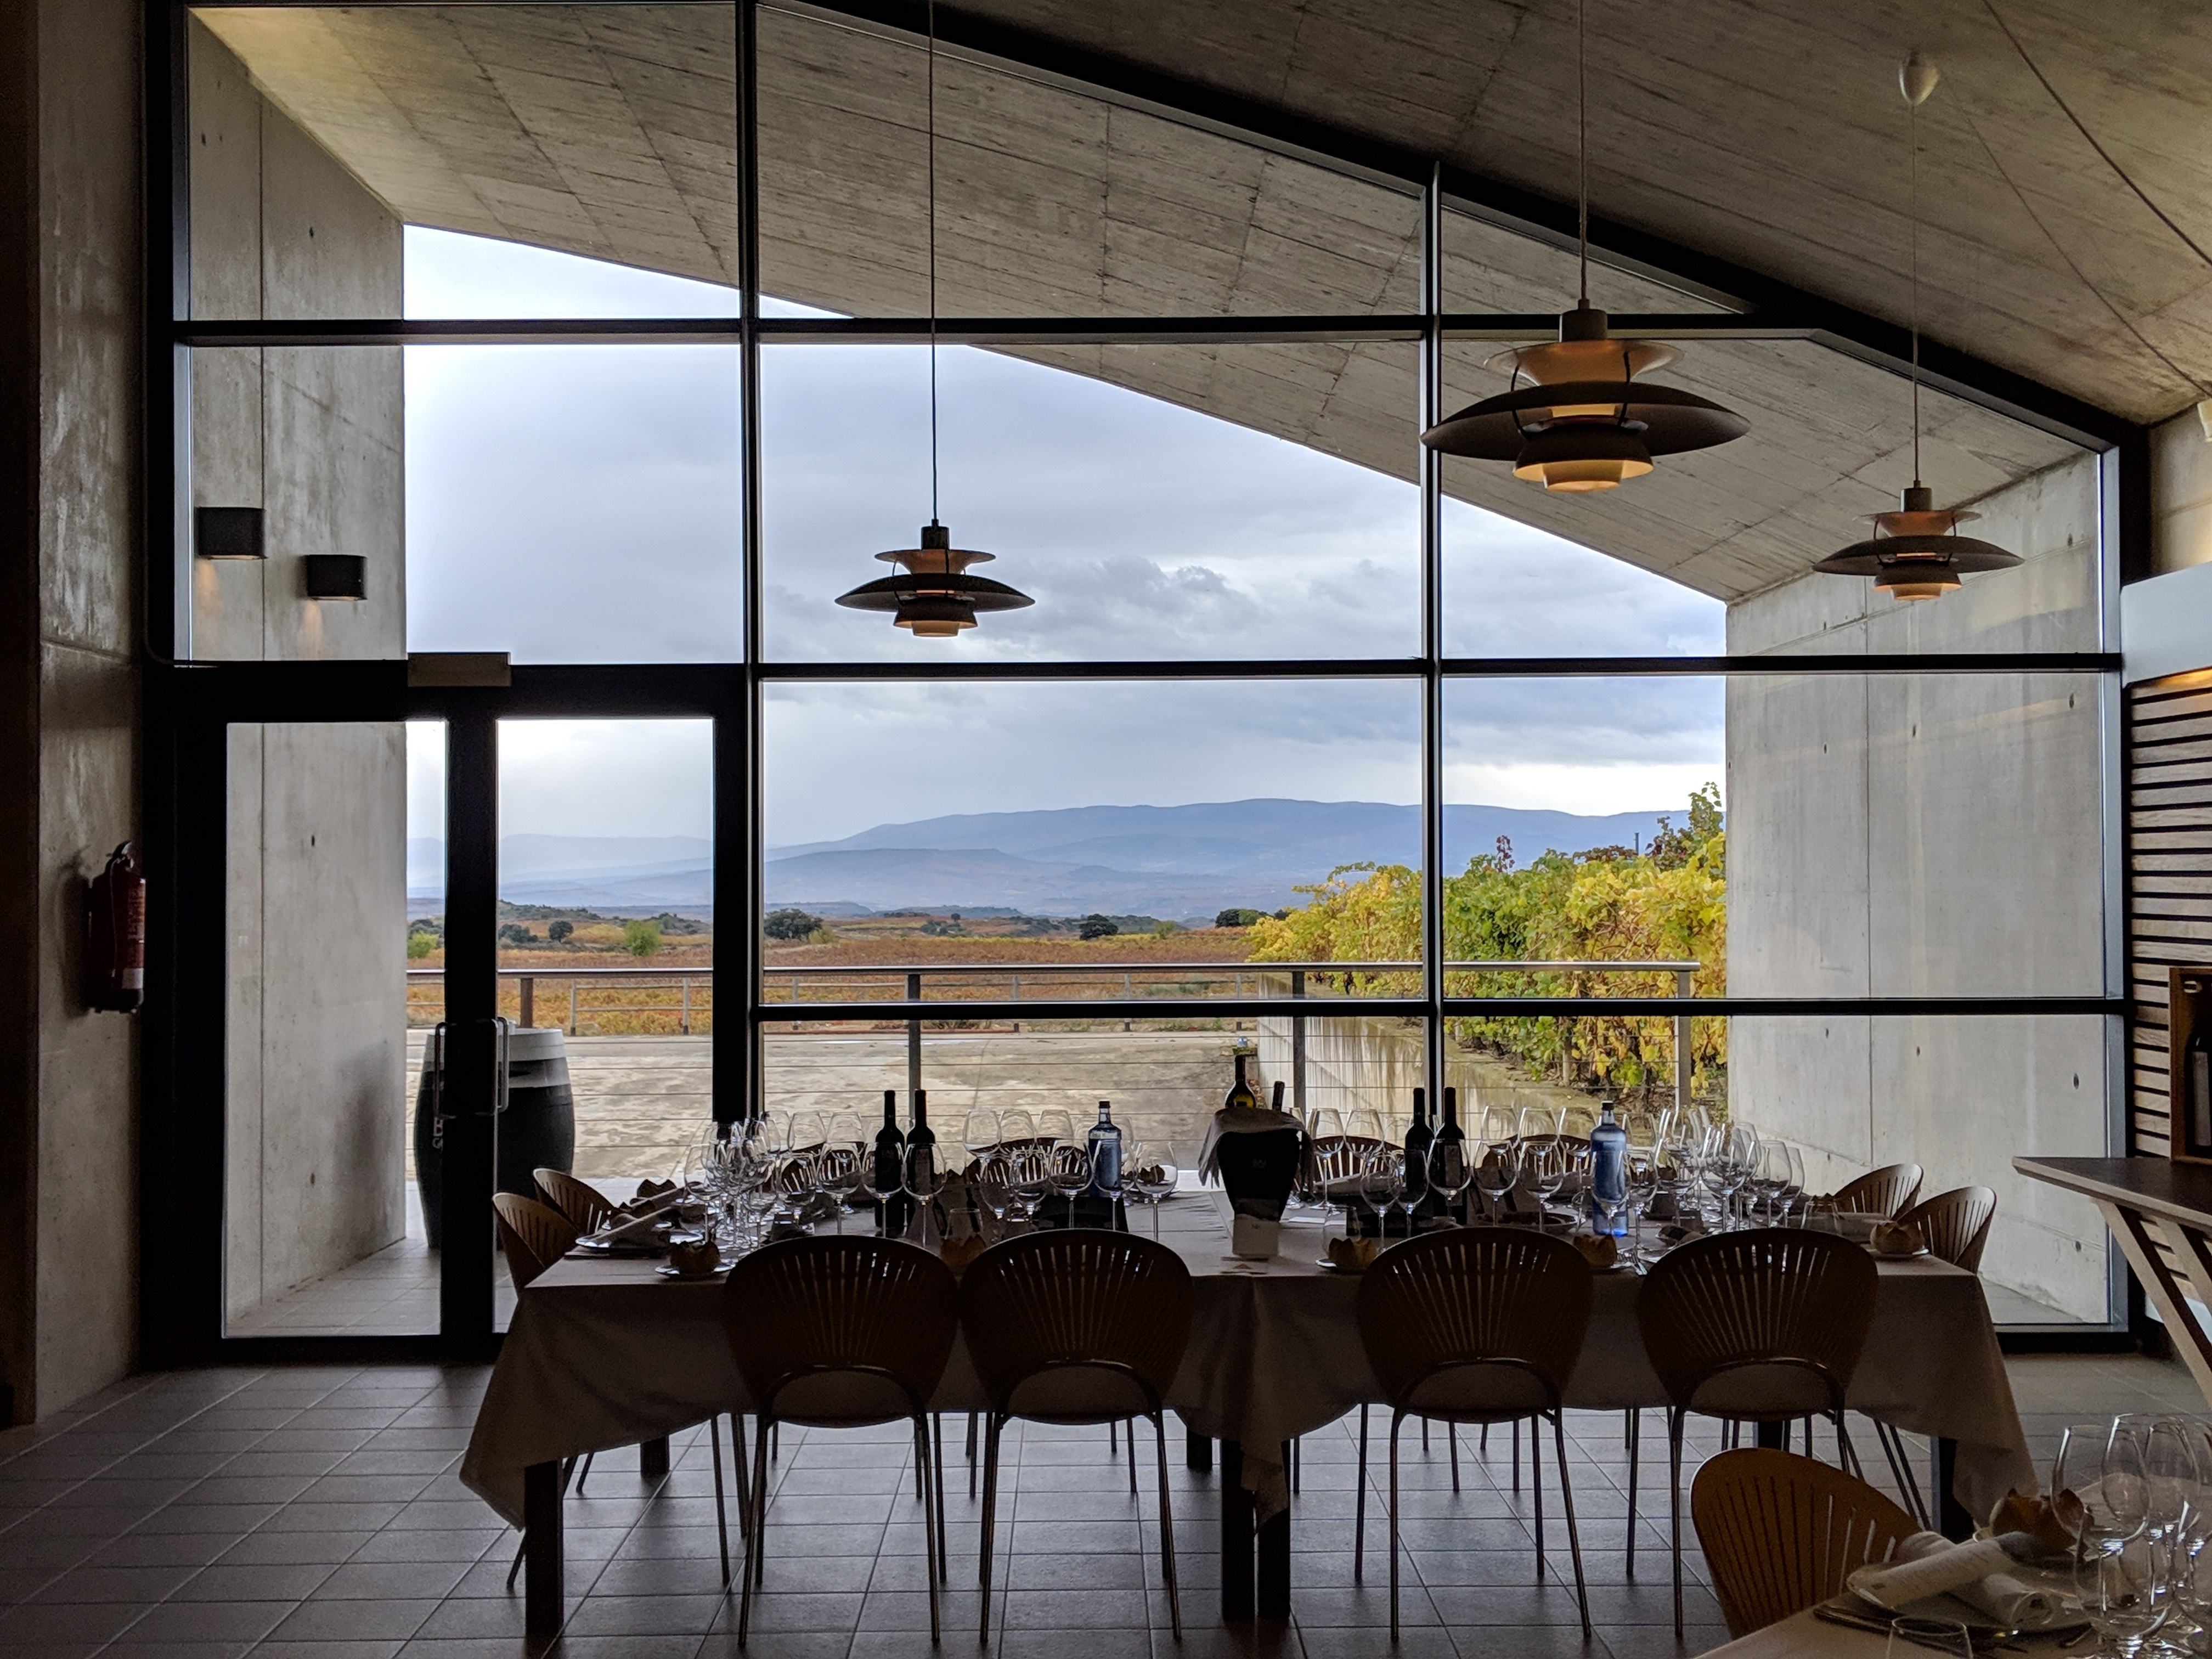 Tour Through The Basque Country   Rioja   The Hungry Chronicles